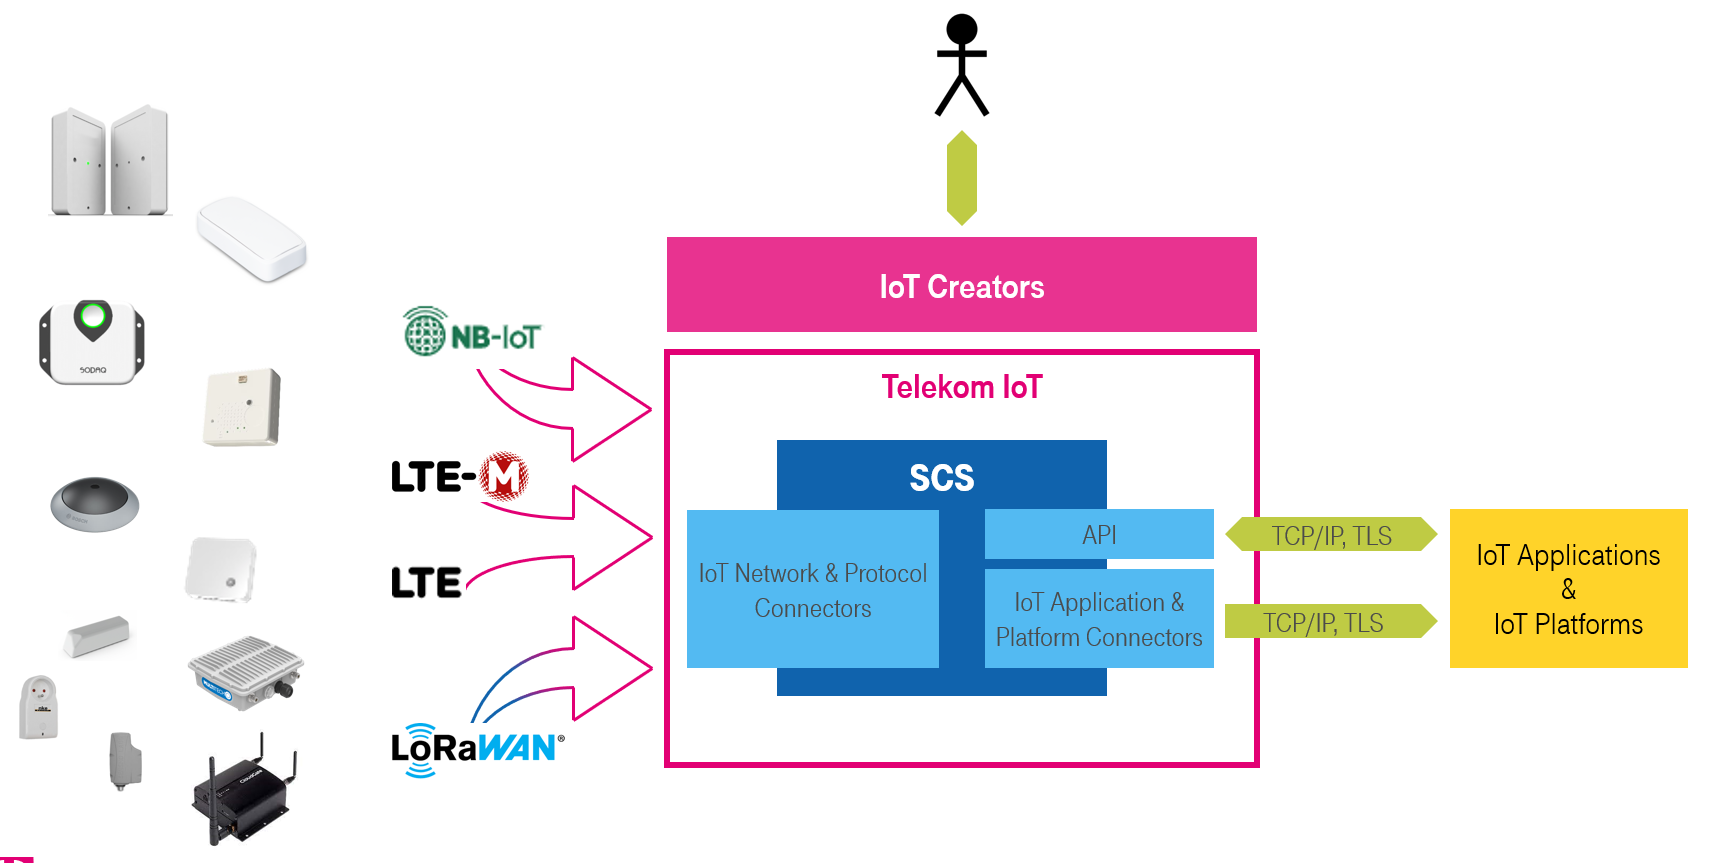 Telekom IoT platform supports NB-IoT, LTE-M, LTE and LoRaWAN as IoT network technologies.